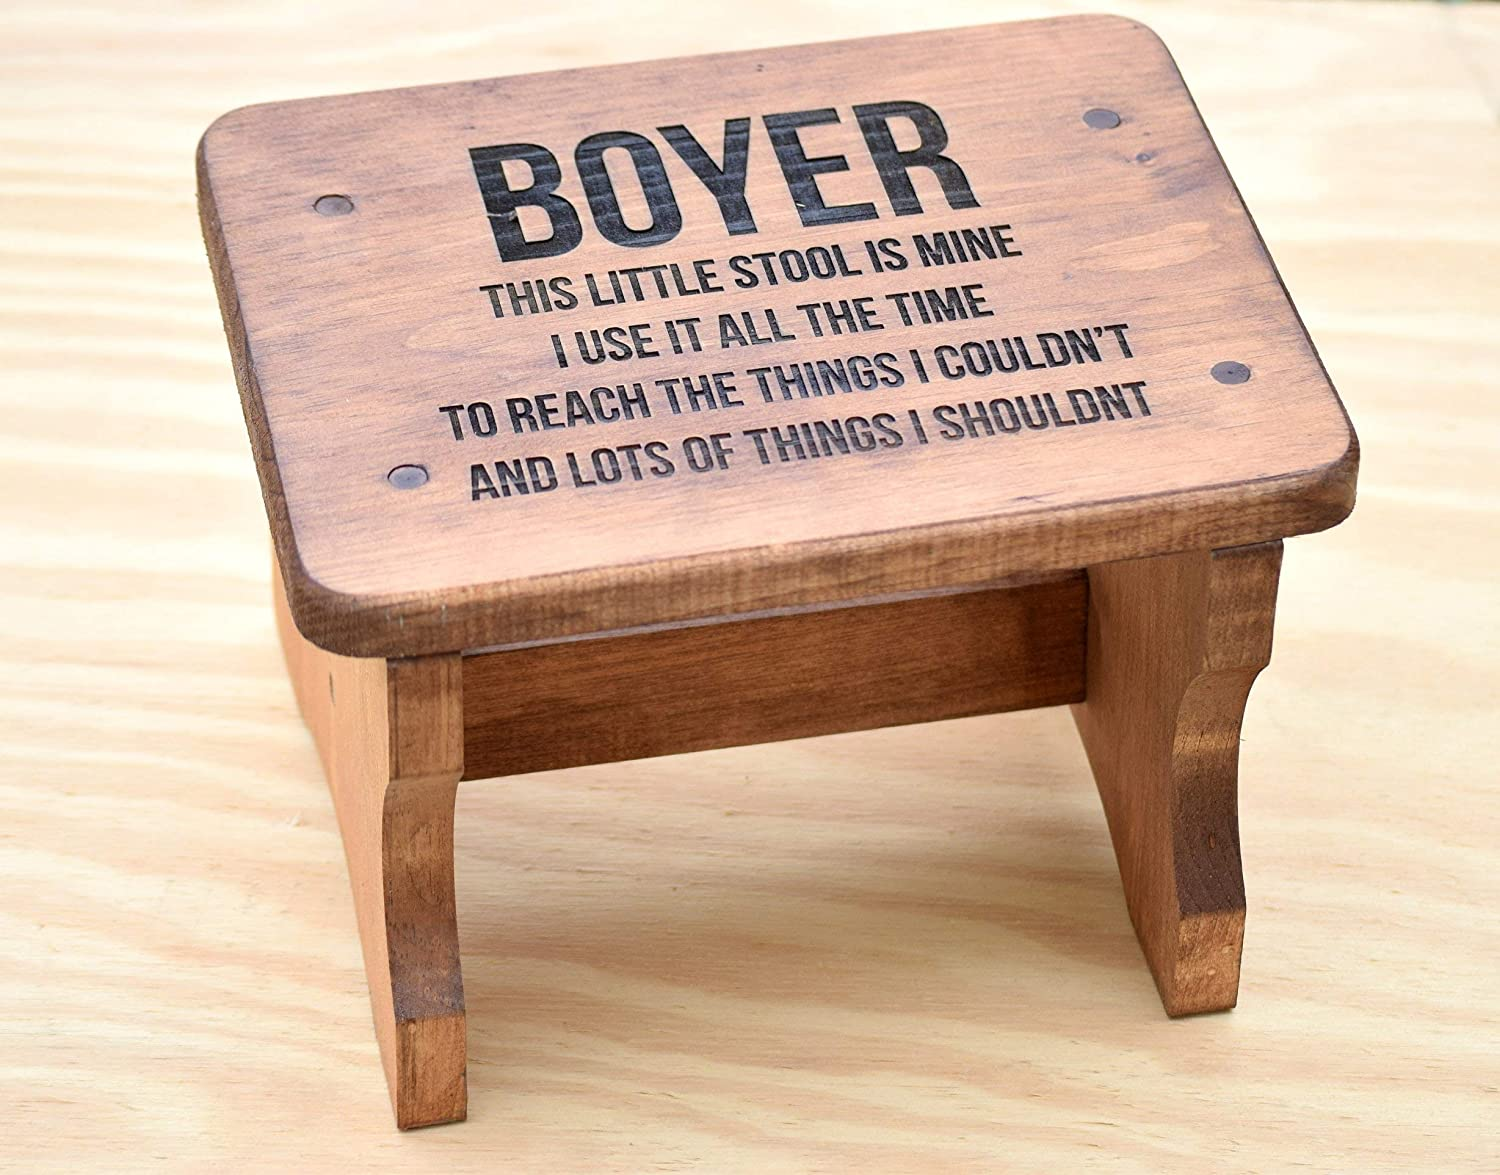 Wondrous Wood Stool Toddler Step Stool Personalized Stool Engraved Stool Kids Stool Bathroom Stool Kitchen Stool Name Stool Kids Gift Ibusinesslaw Wood Chair Design Ideas Ibusinesslaworg